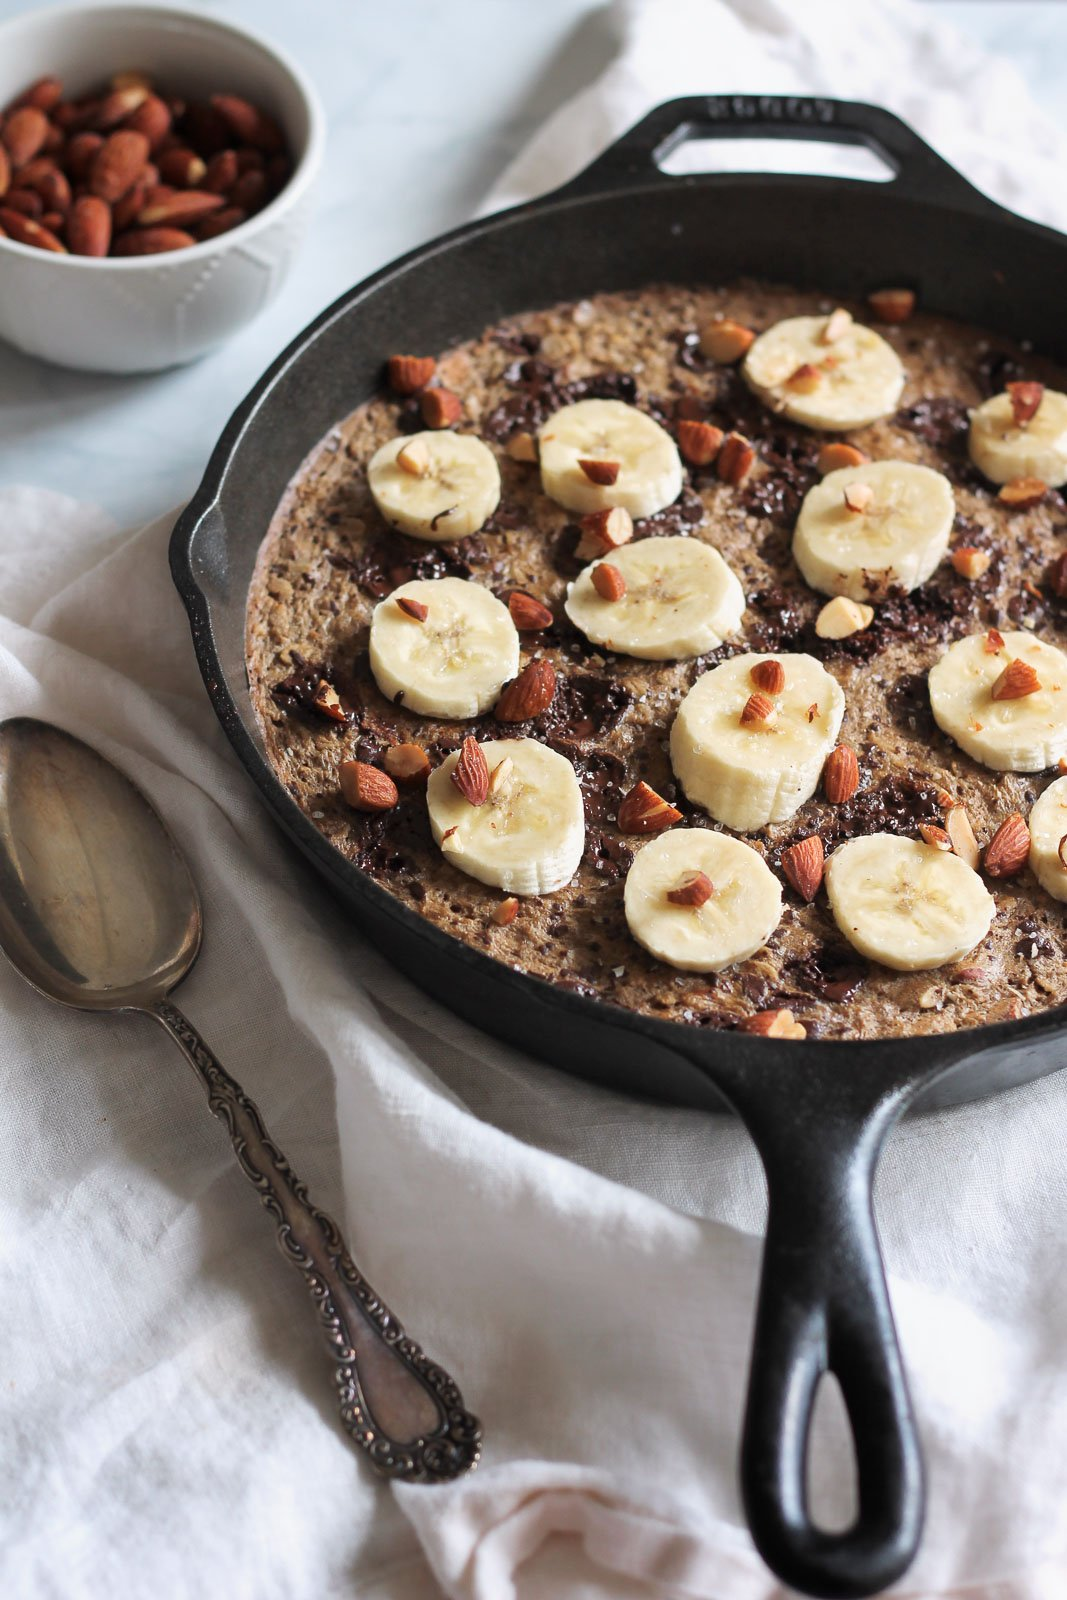 These 16 healthy breakfast recipes are perfect to meal-prep for your busy week! Each delicious recipe packs plenty of fiber and protein to keep you satisfied until lunch.